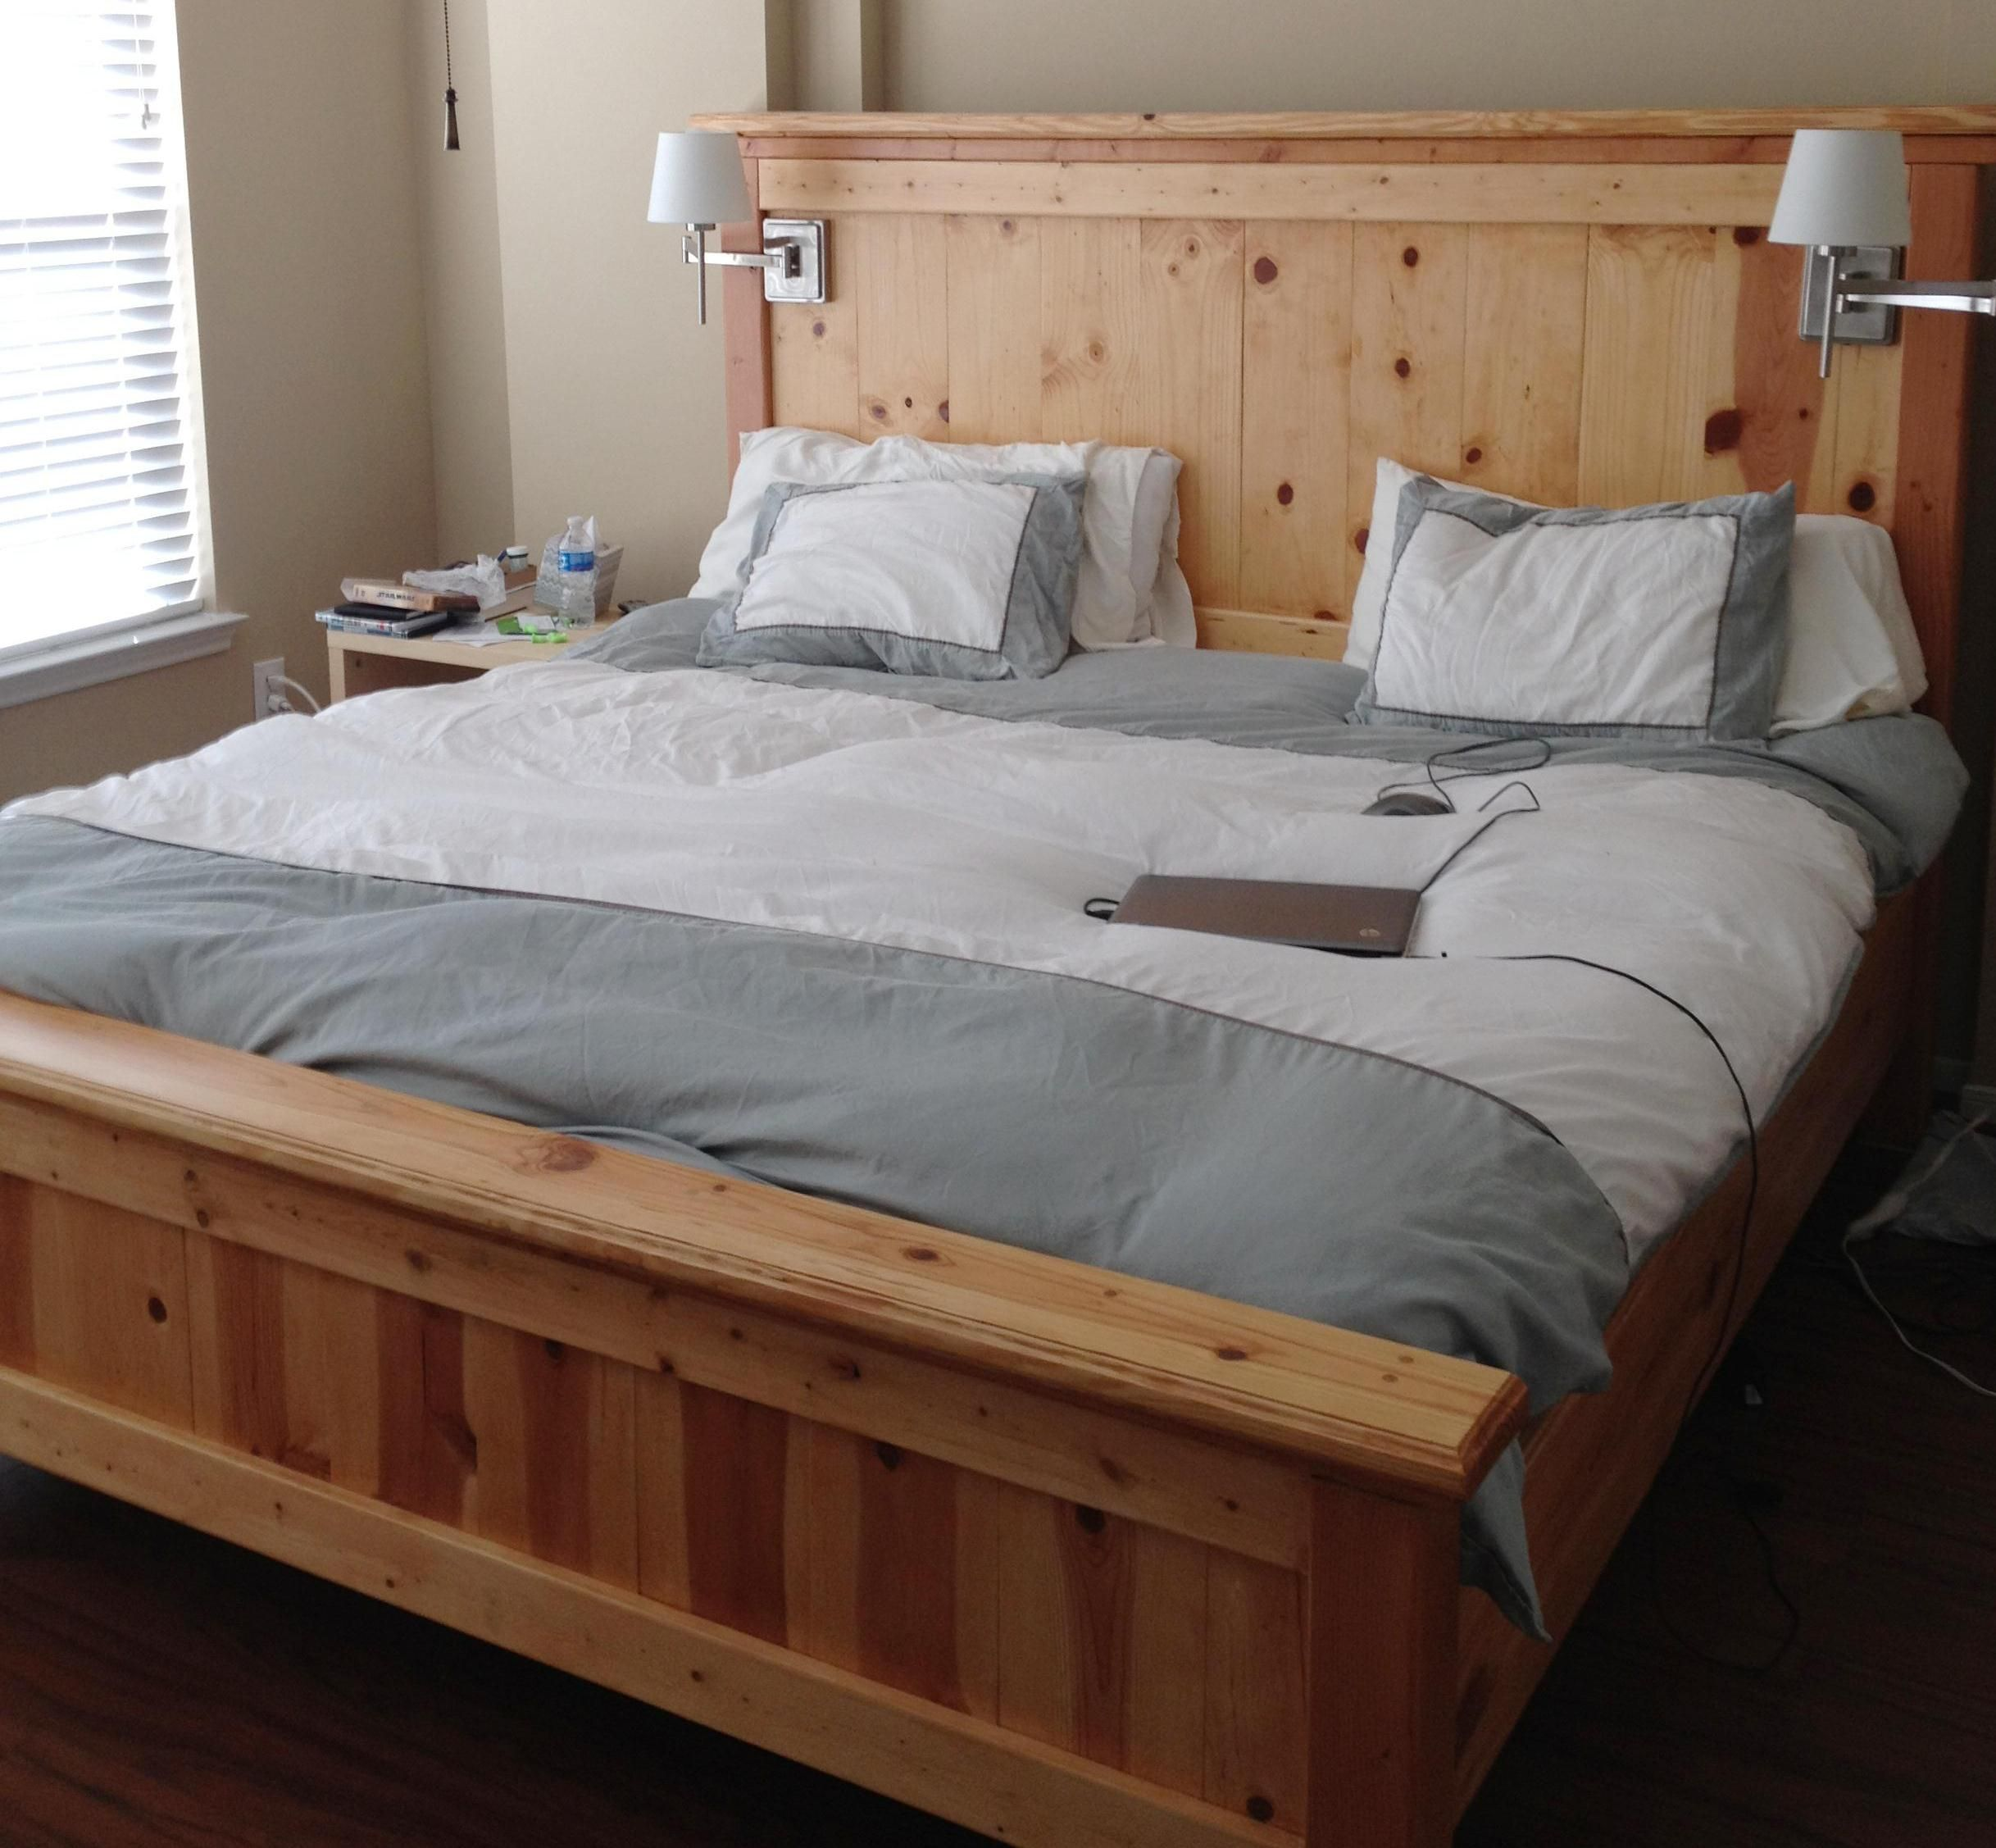 White king bed frames - Bed Frame Blueprints Free Farmhouse Bed King Do It Yourself Home Projects From Ana